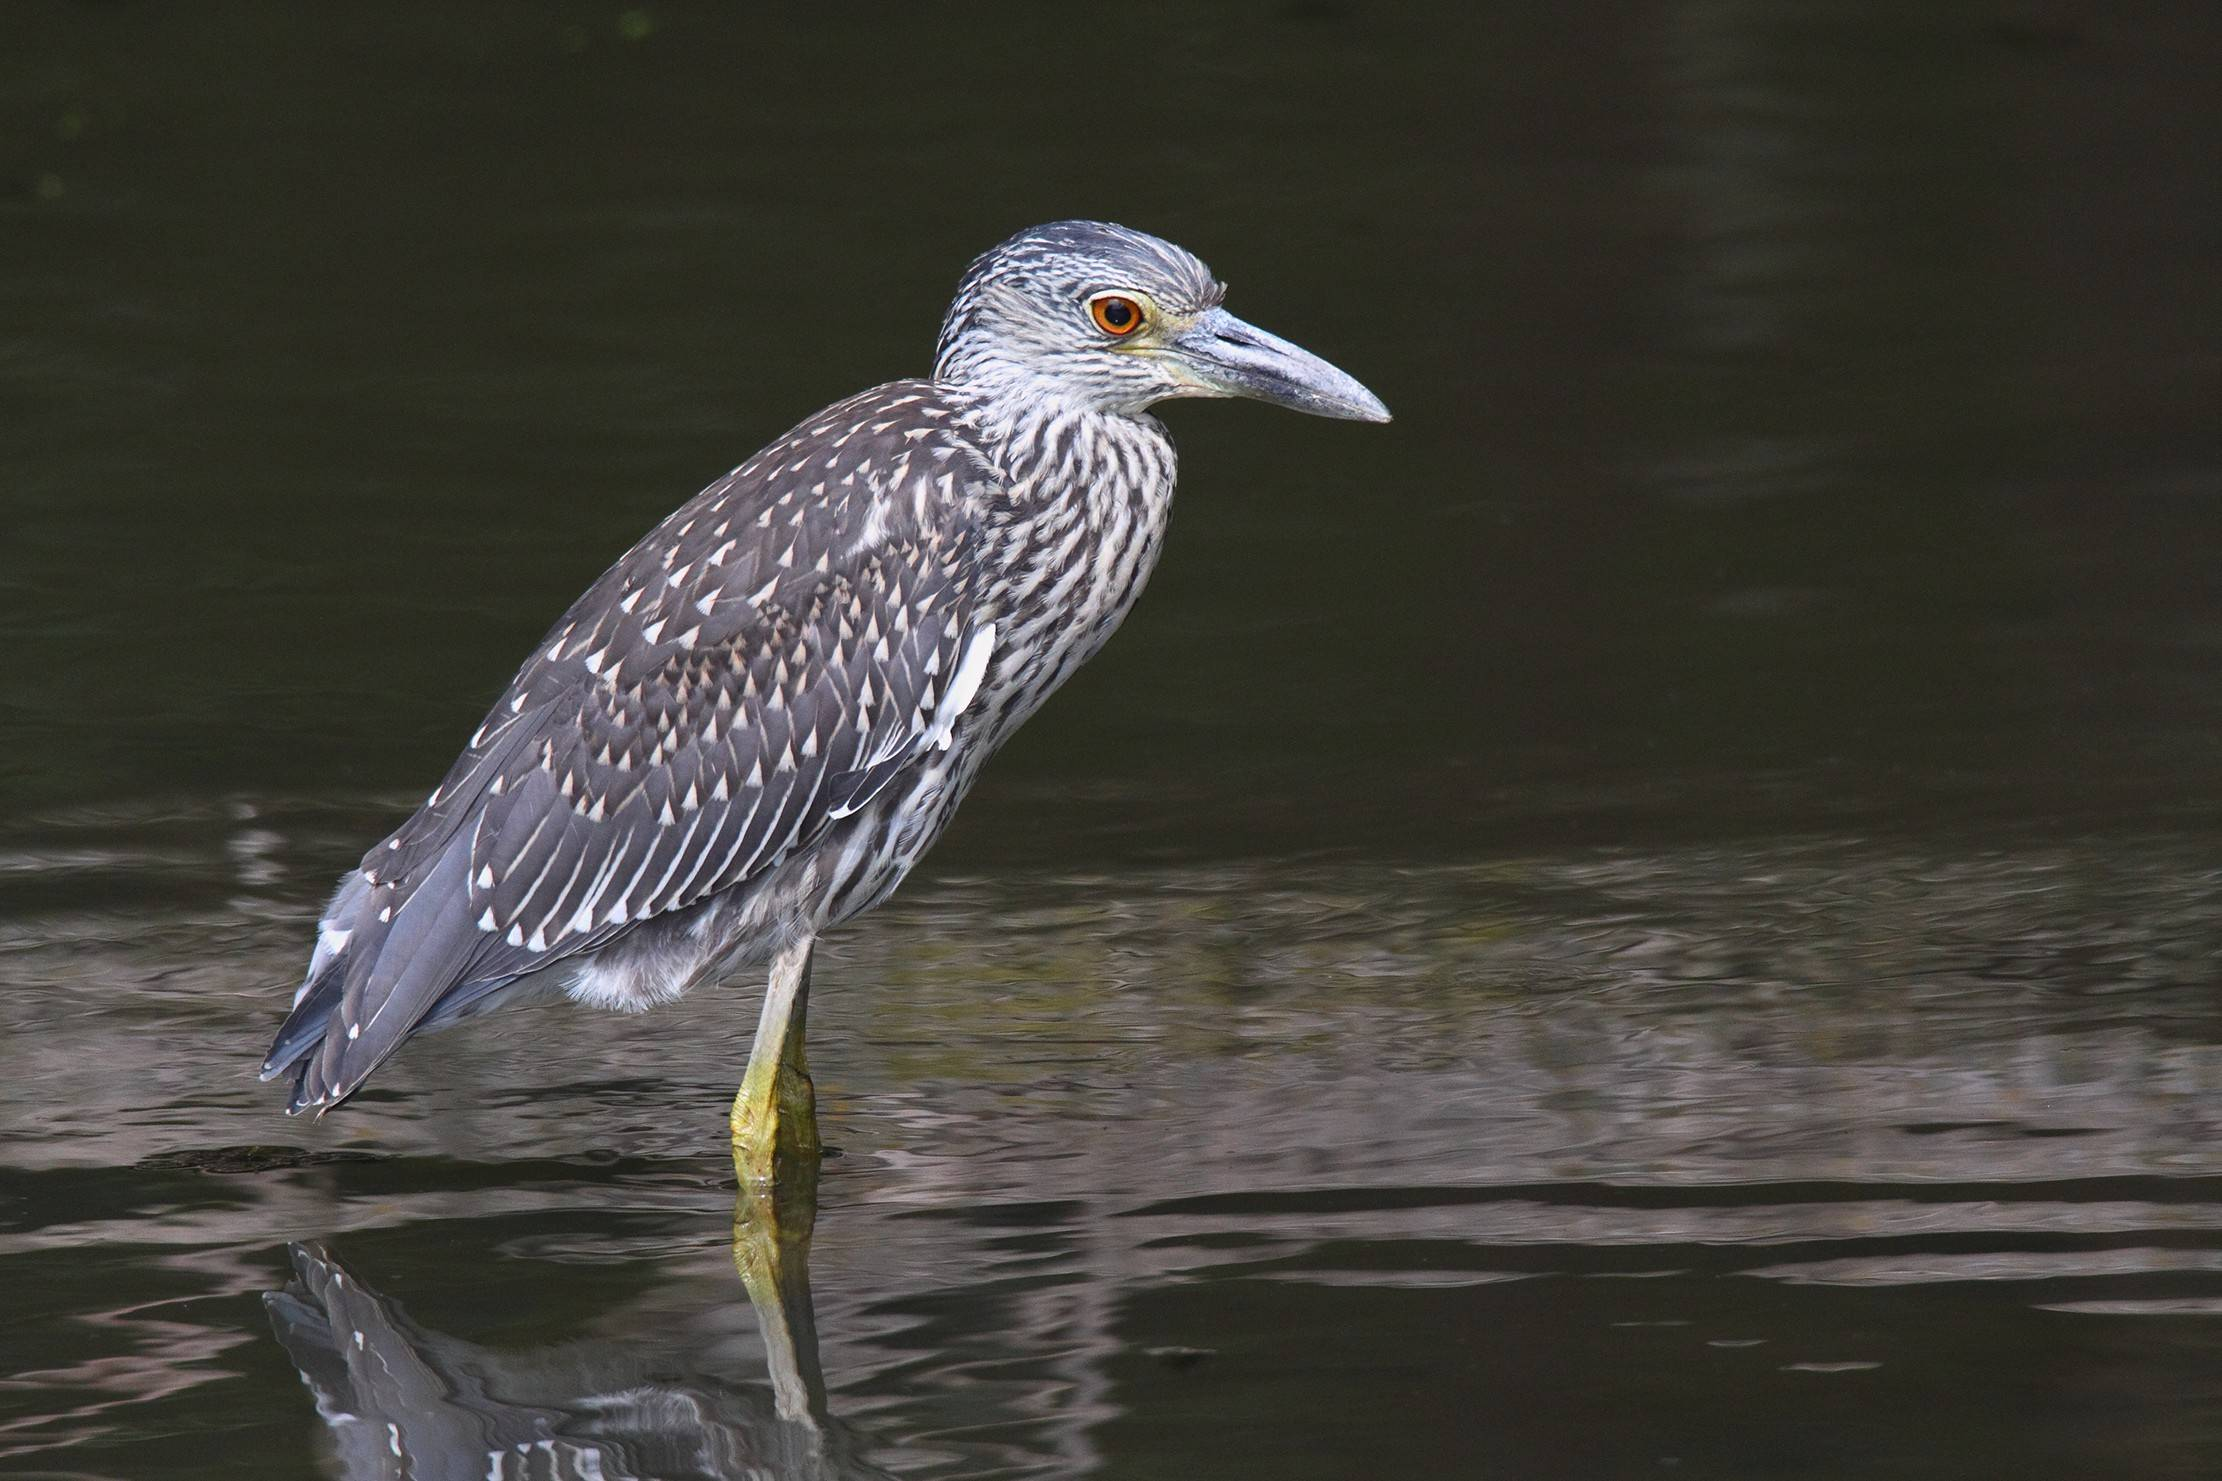 This immature yellow-crowned night heron, discovered at Fermilab in Batavia, caused a stir among local birders in early September.